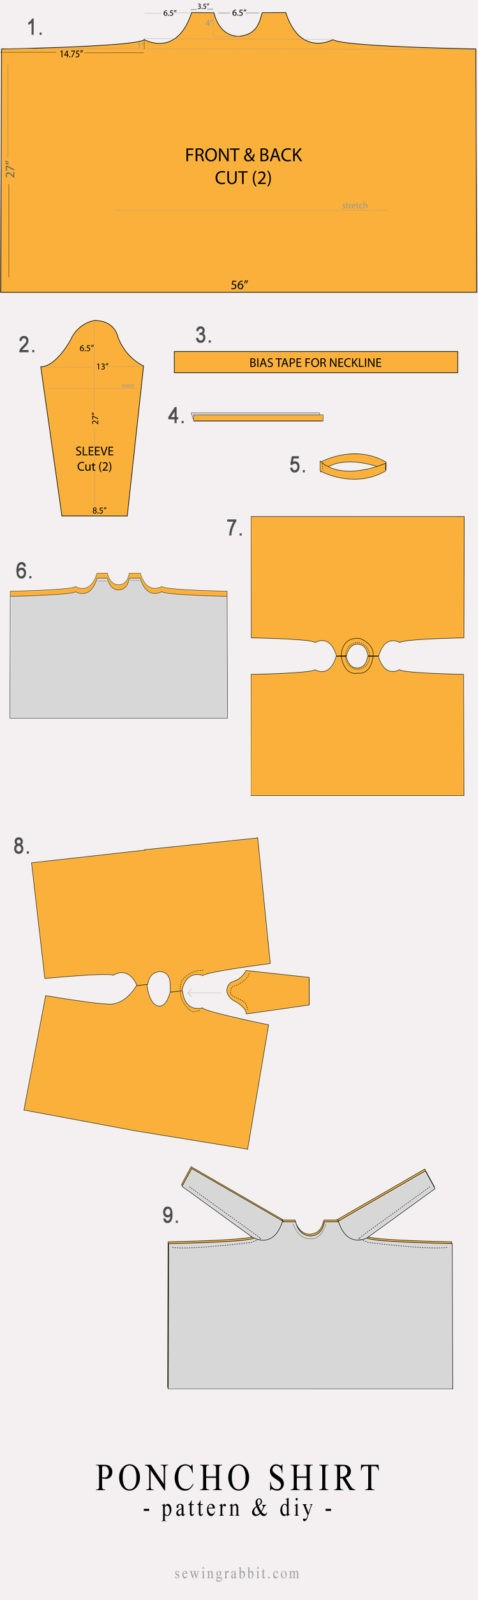 Poncho-Shirt-Instructions